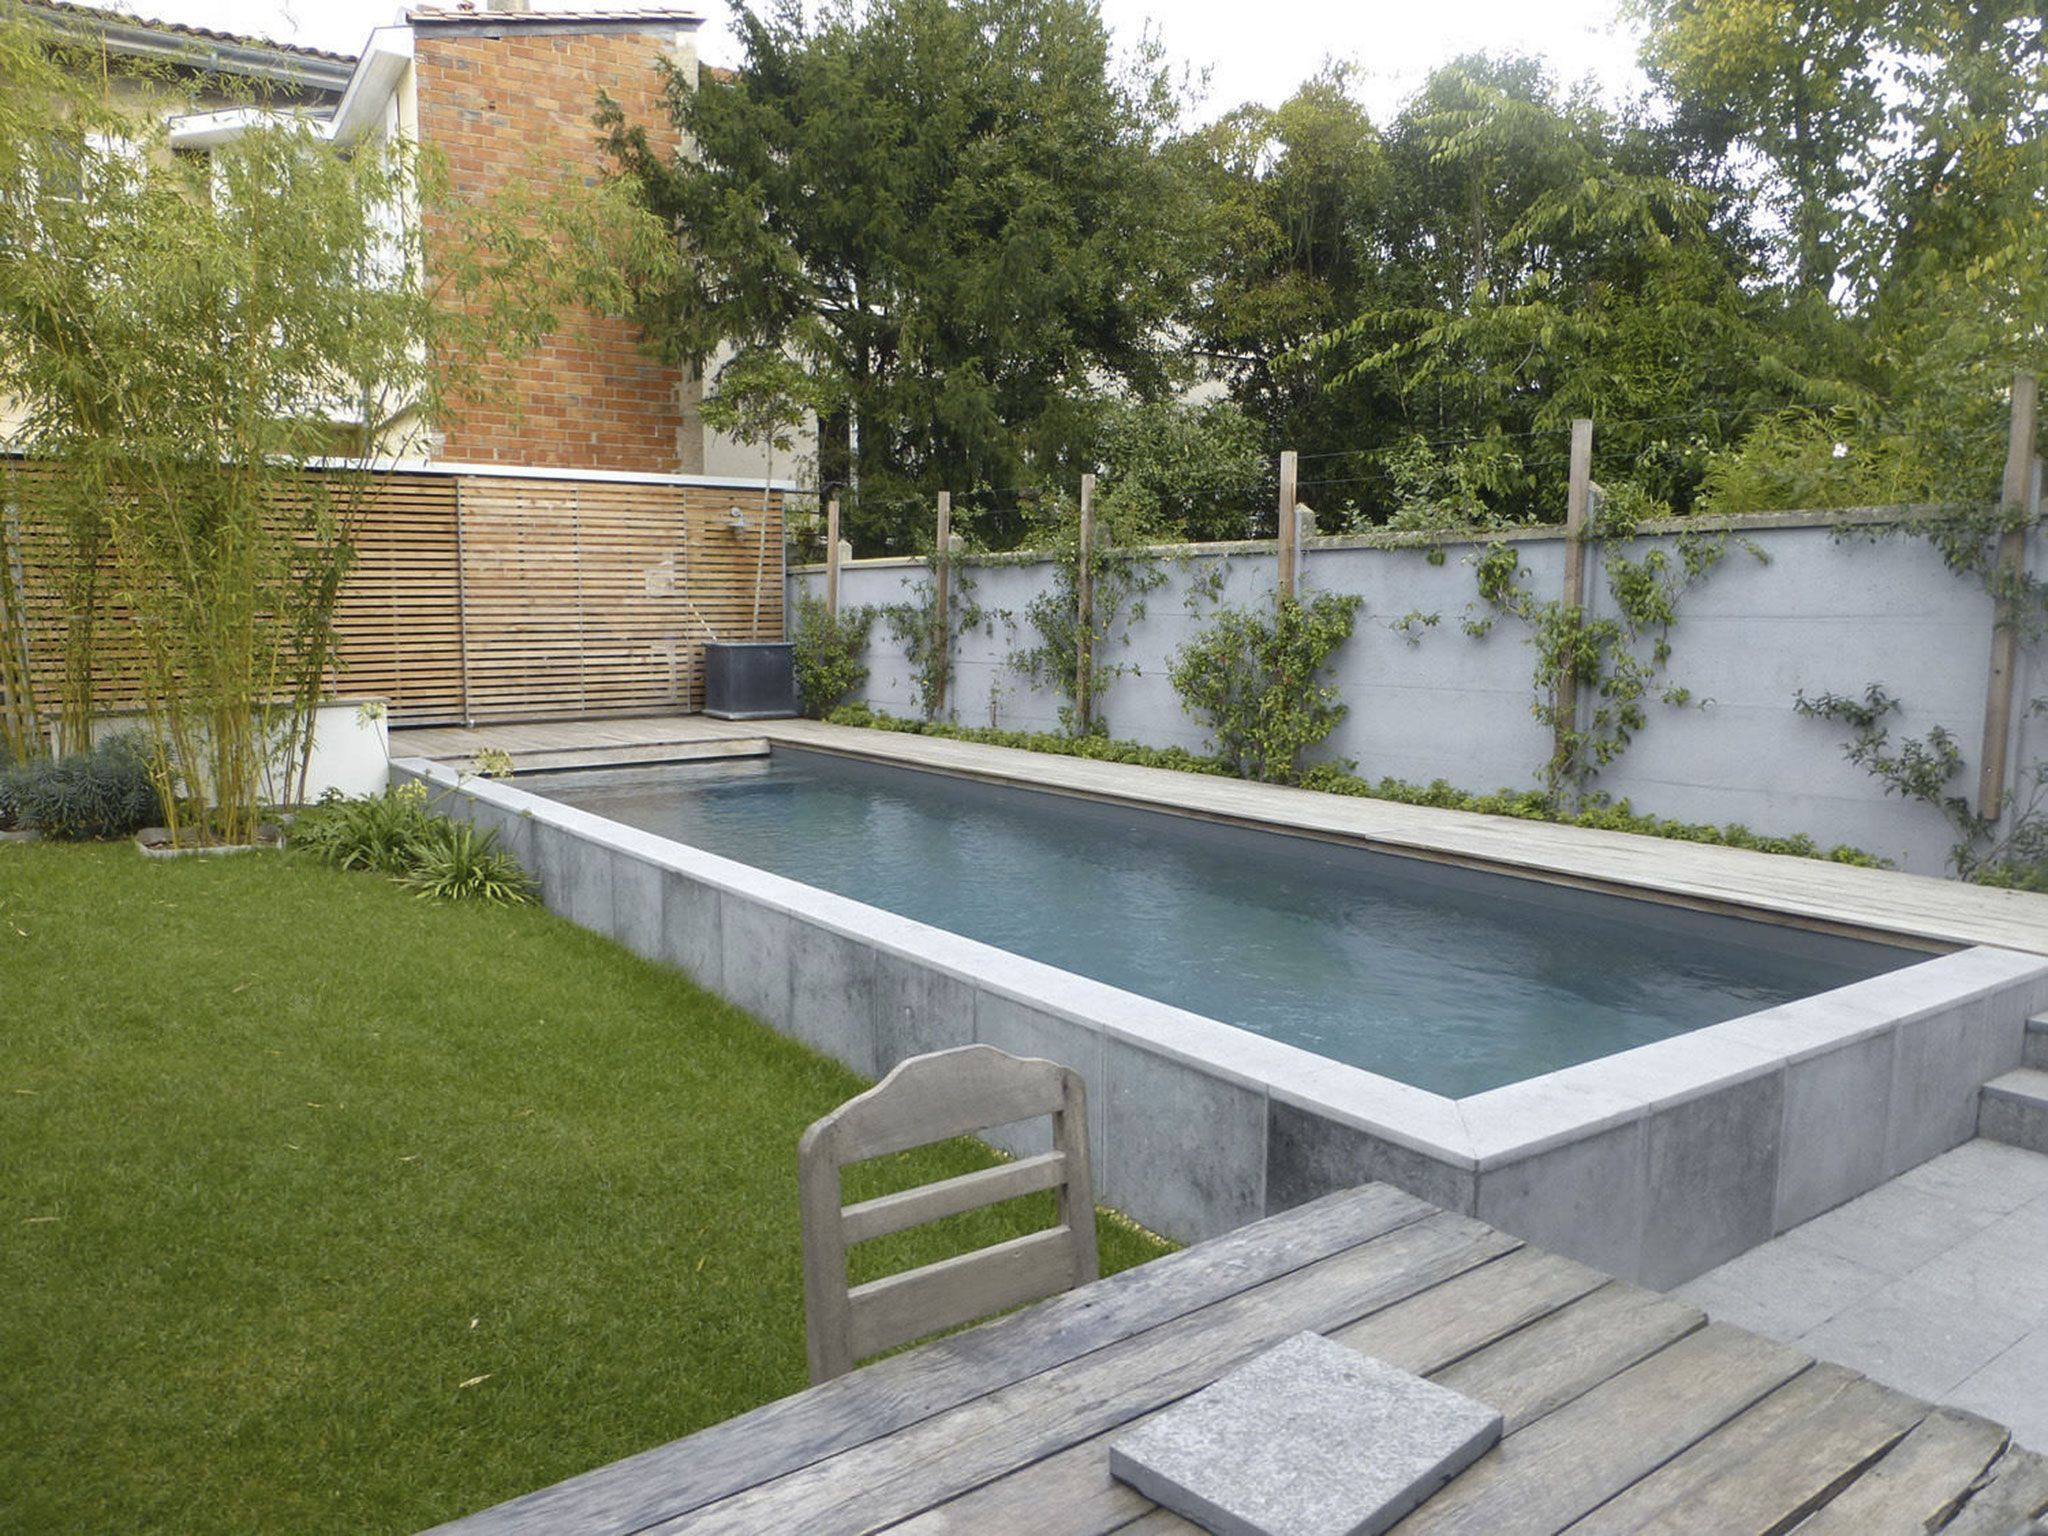 Piscine semi enterr e en b ton piscines pinterest for Piscine en teck semi enterree